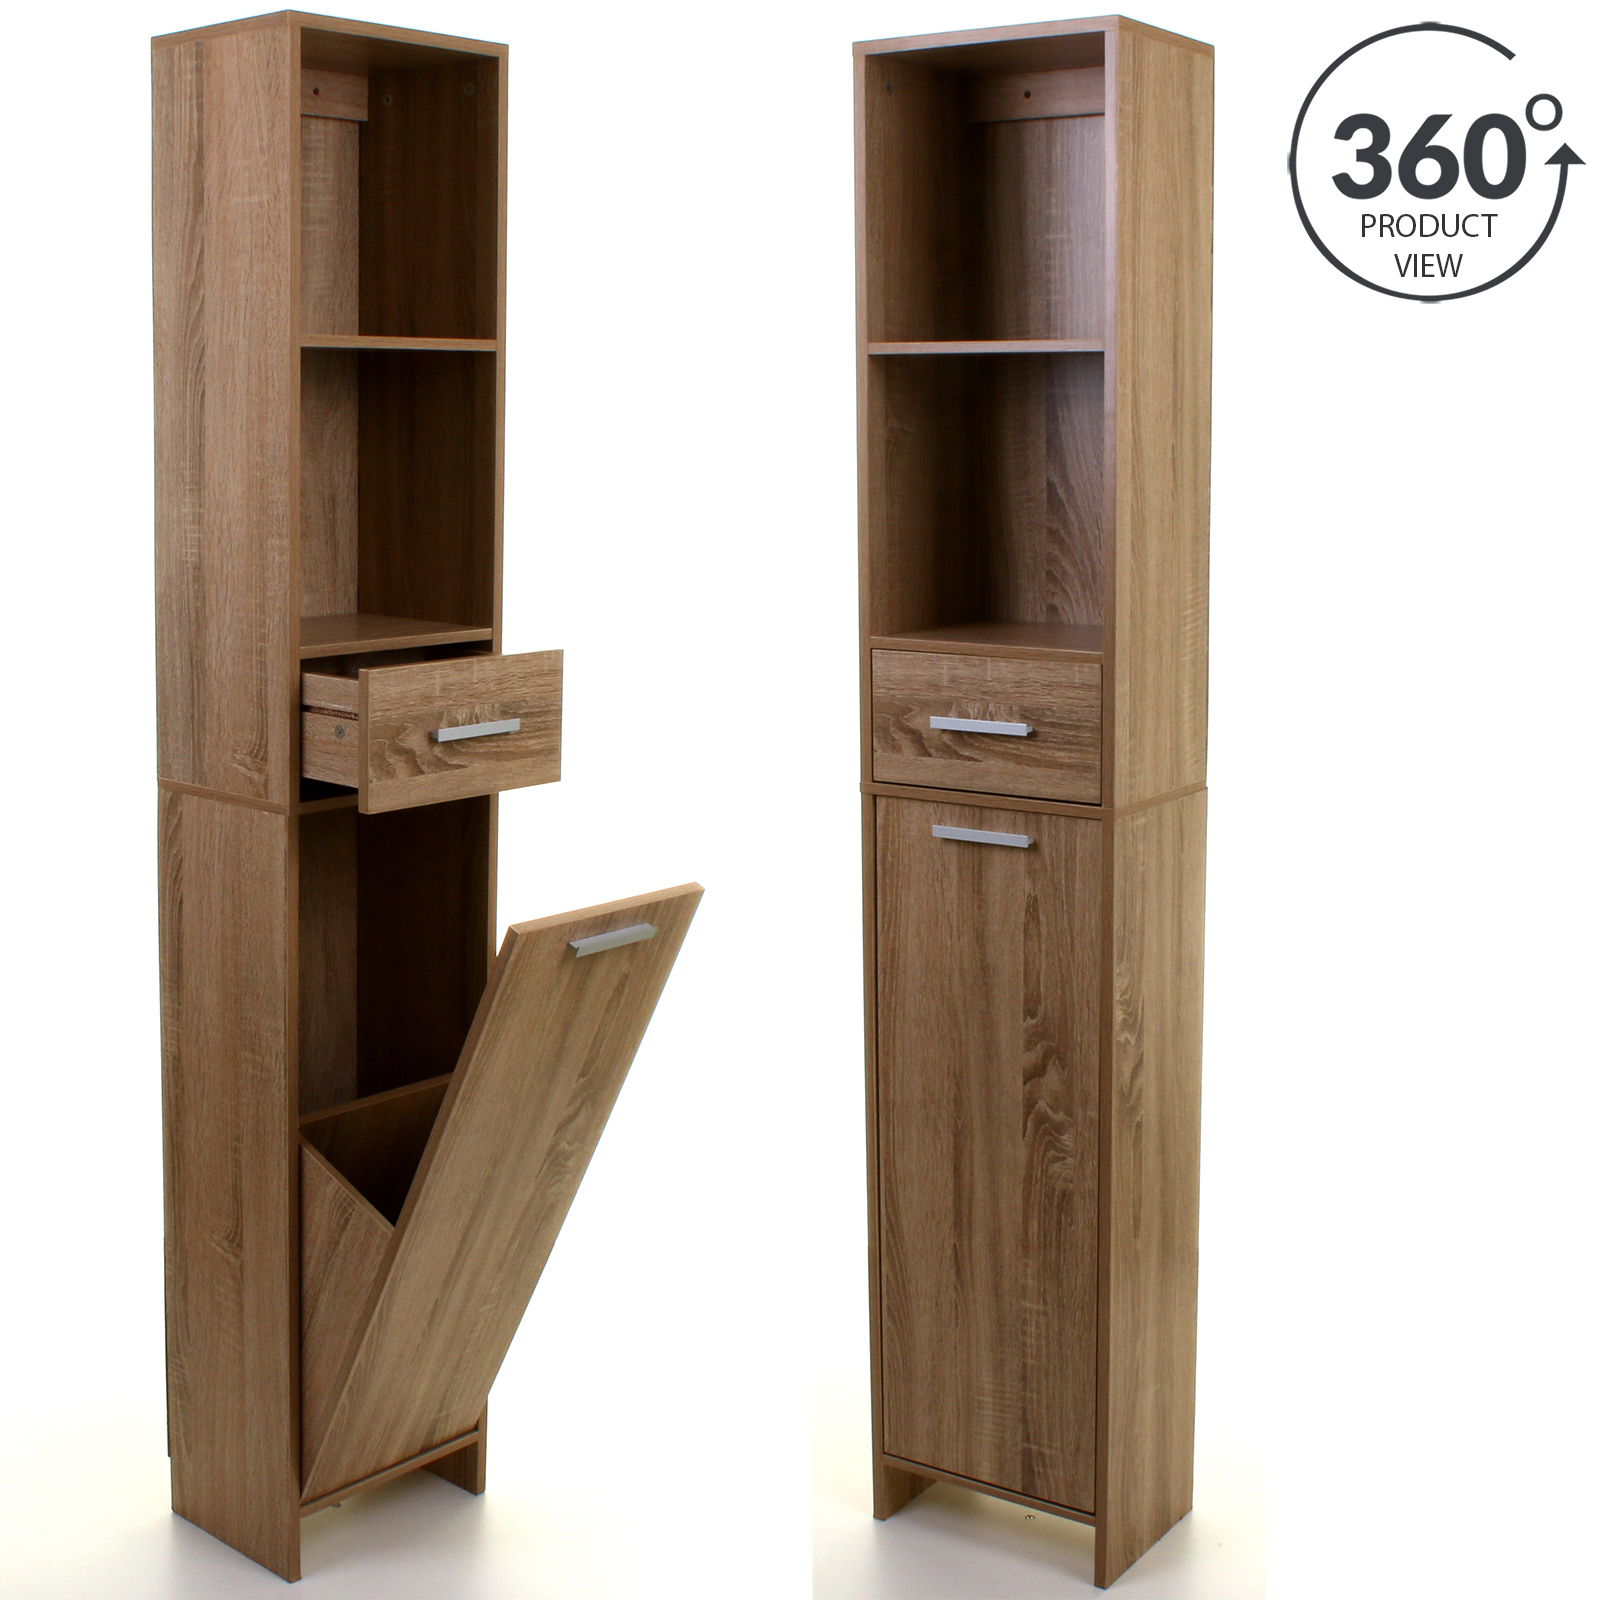 Tall boy wooden storage unit cupboard cabinet shelving for Wooden bathroom shelving unit